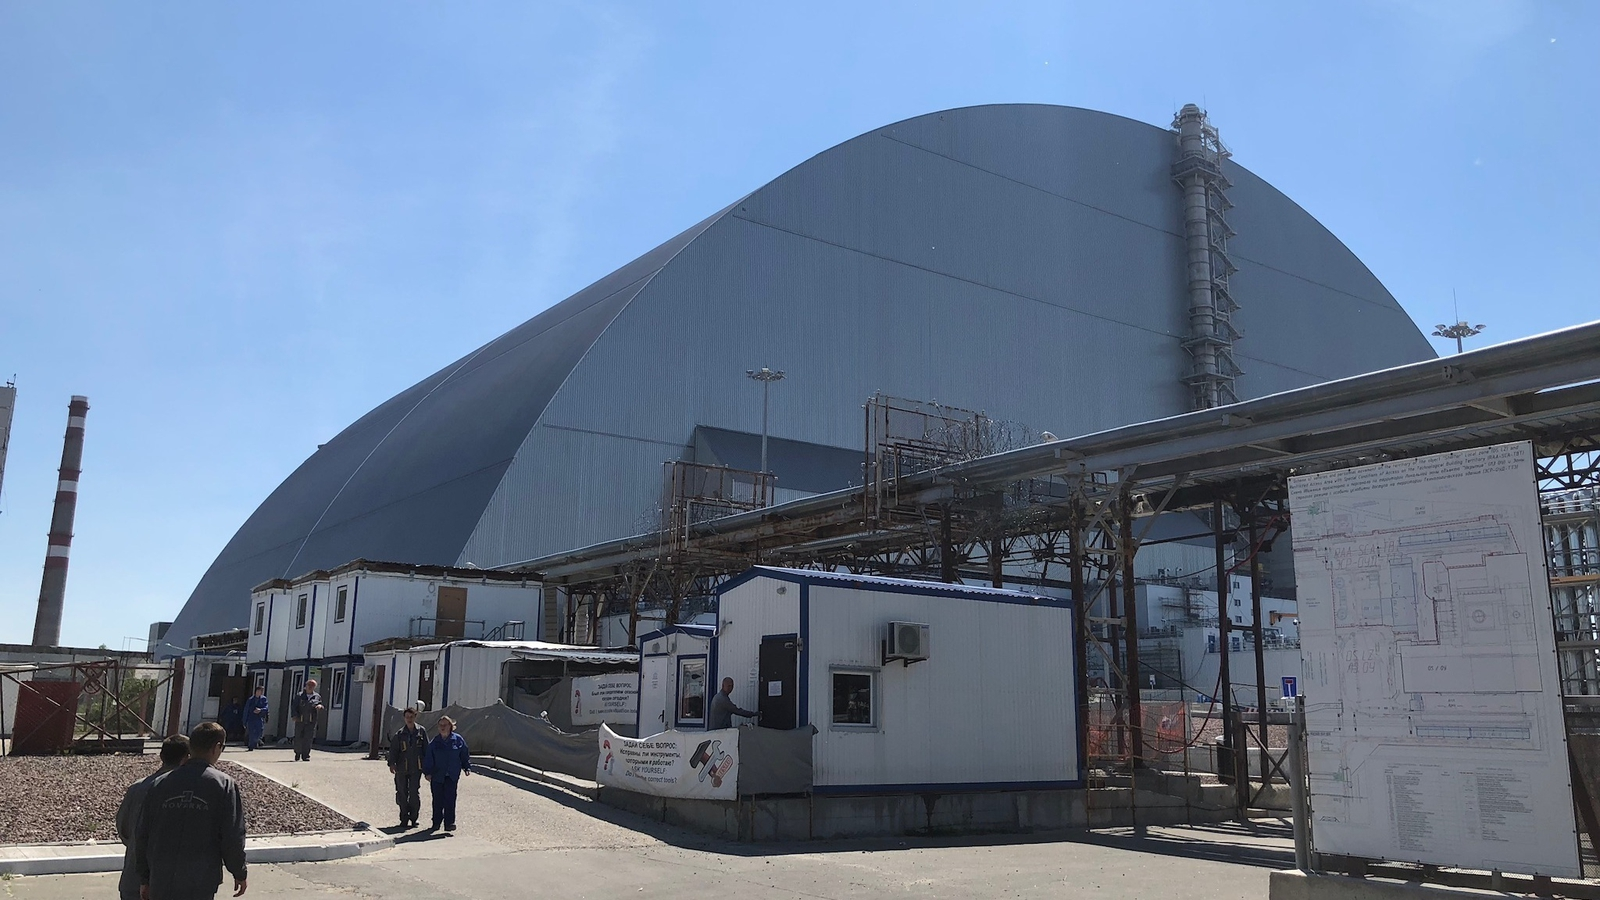 Image - The New Safe Confinement unit at the Chernobyl plant